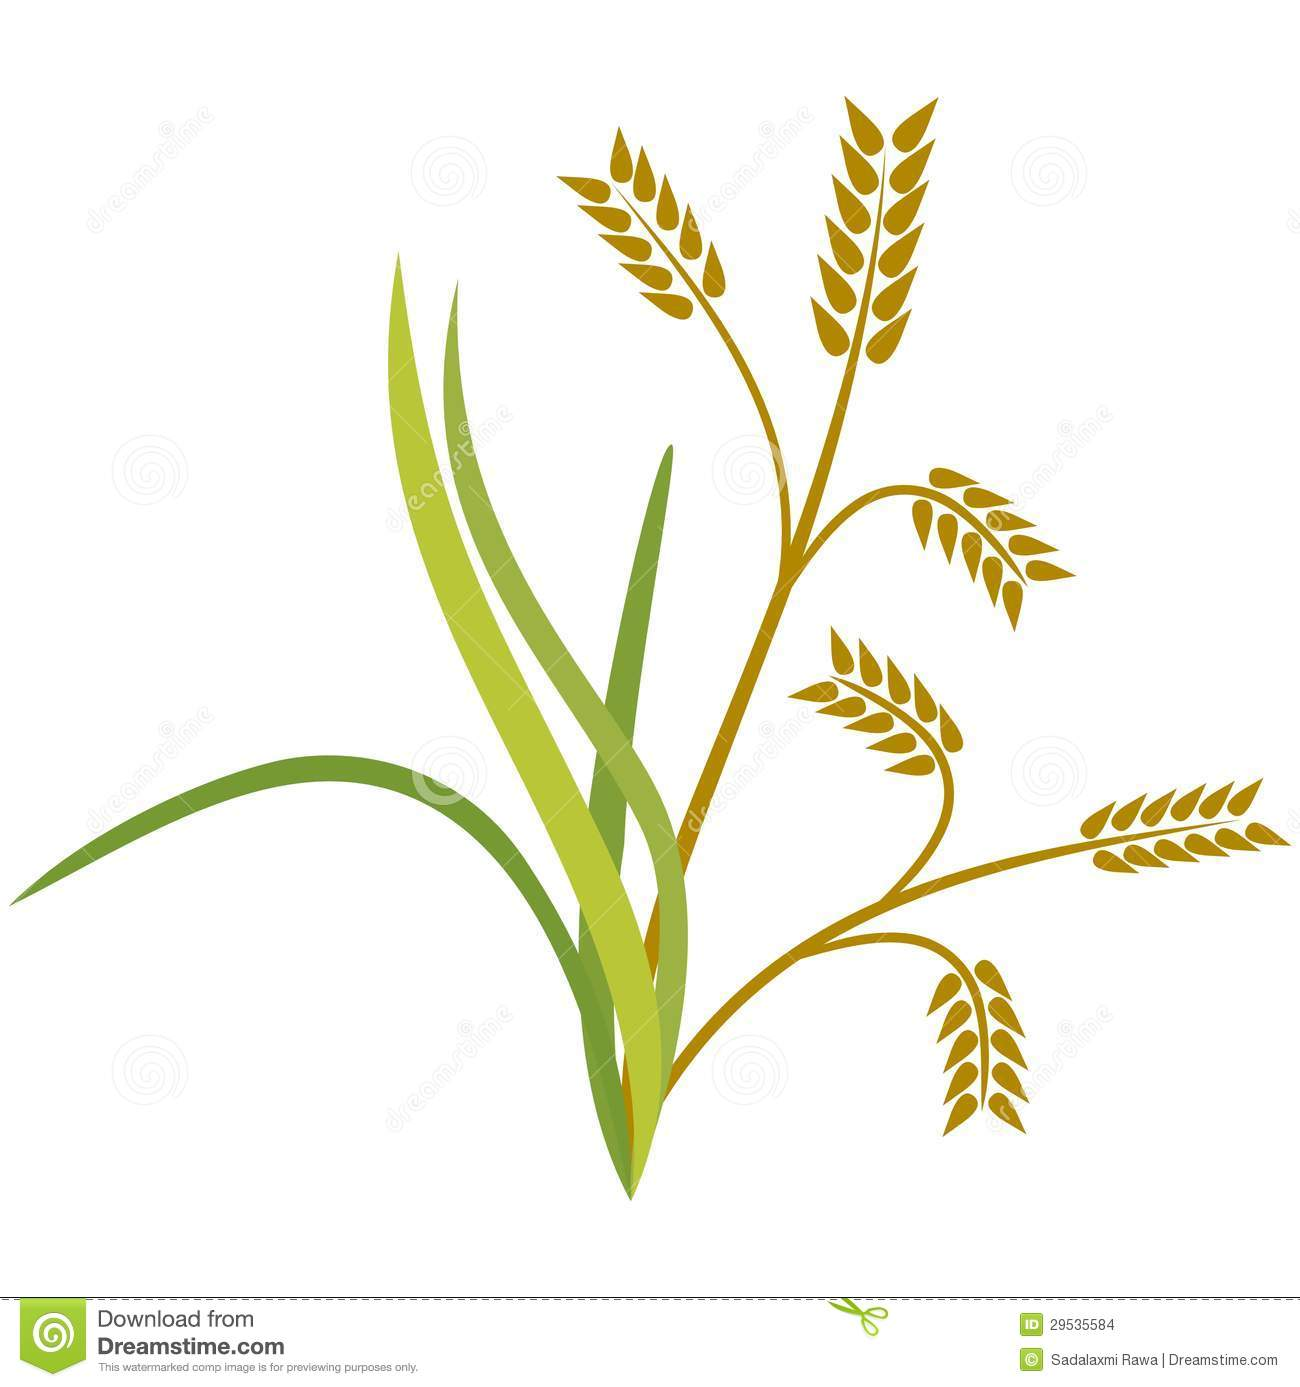 Rice crop clipart.